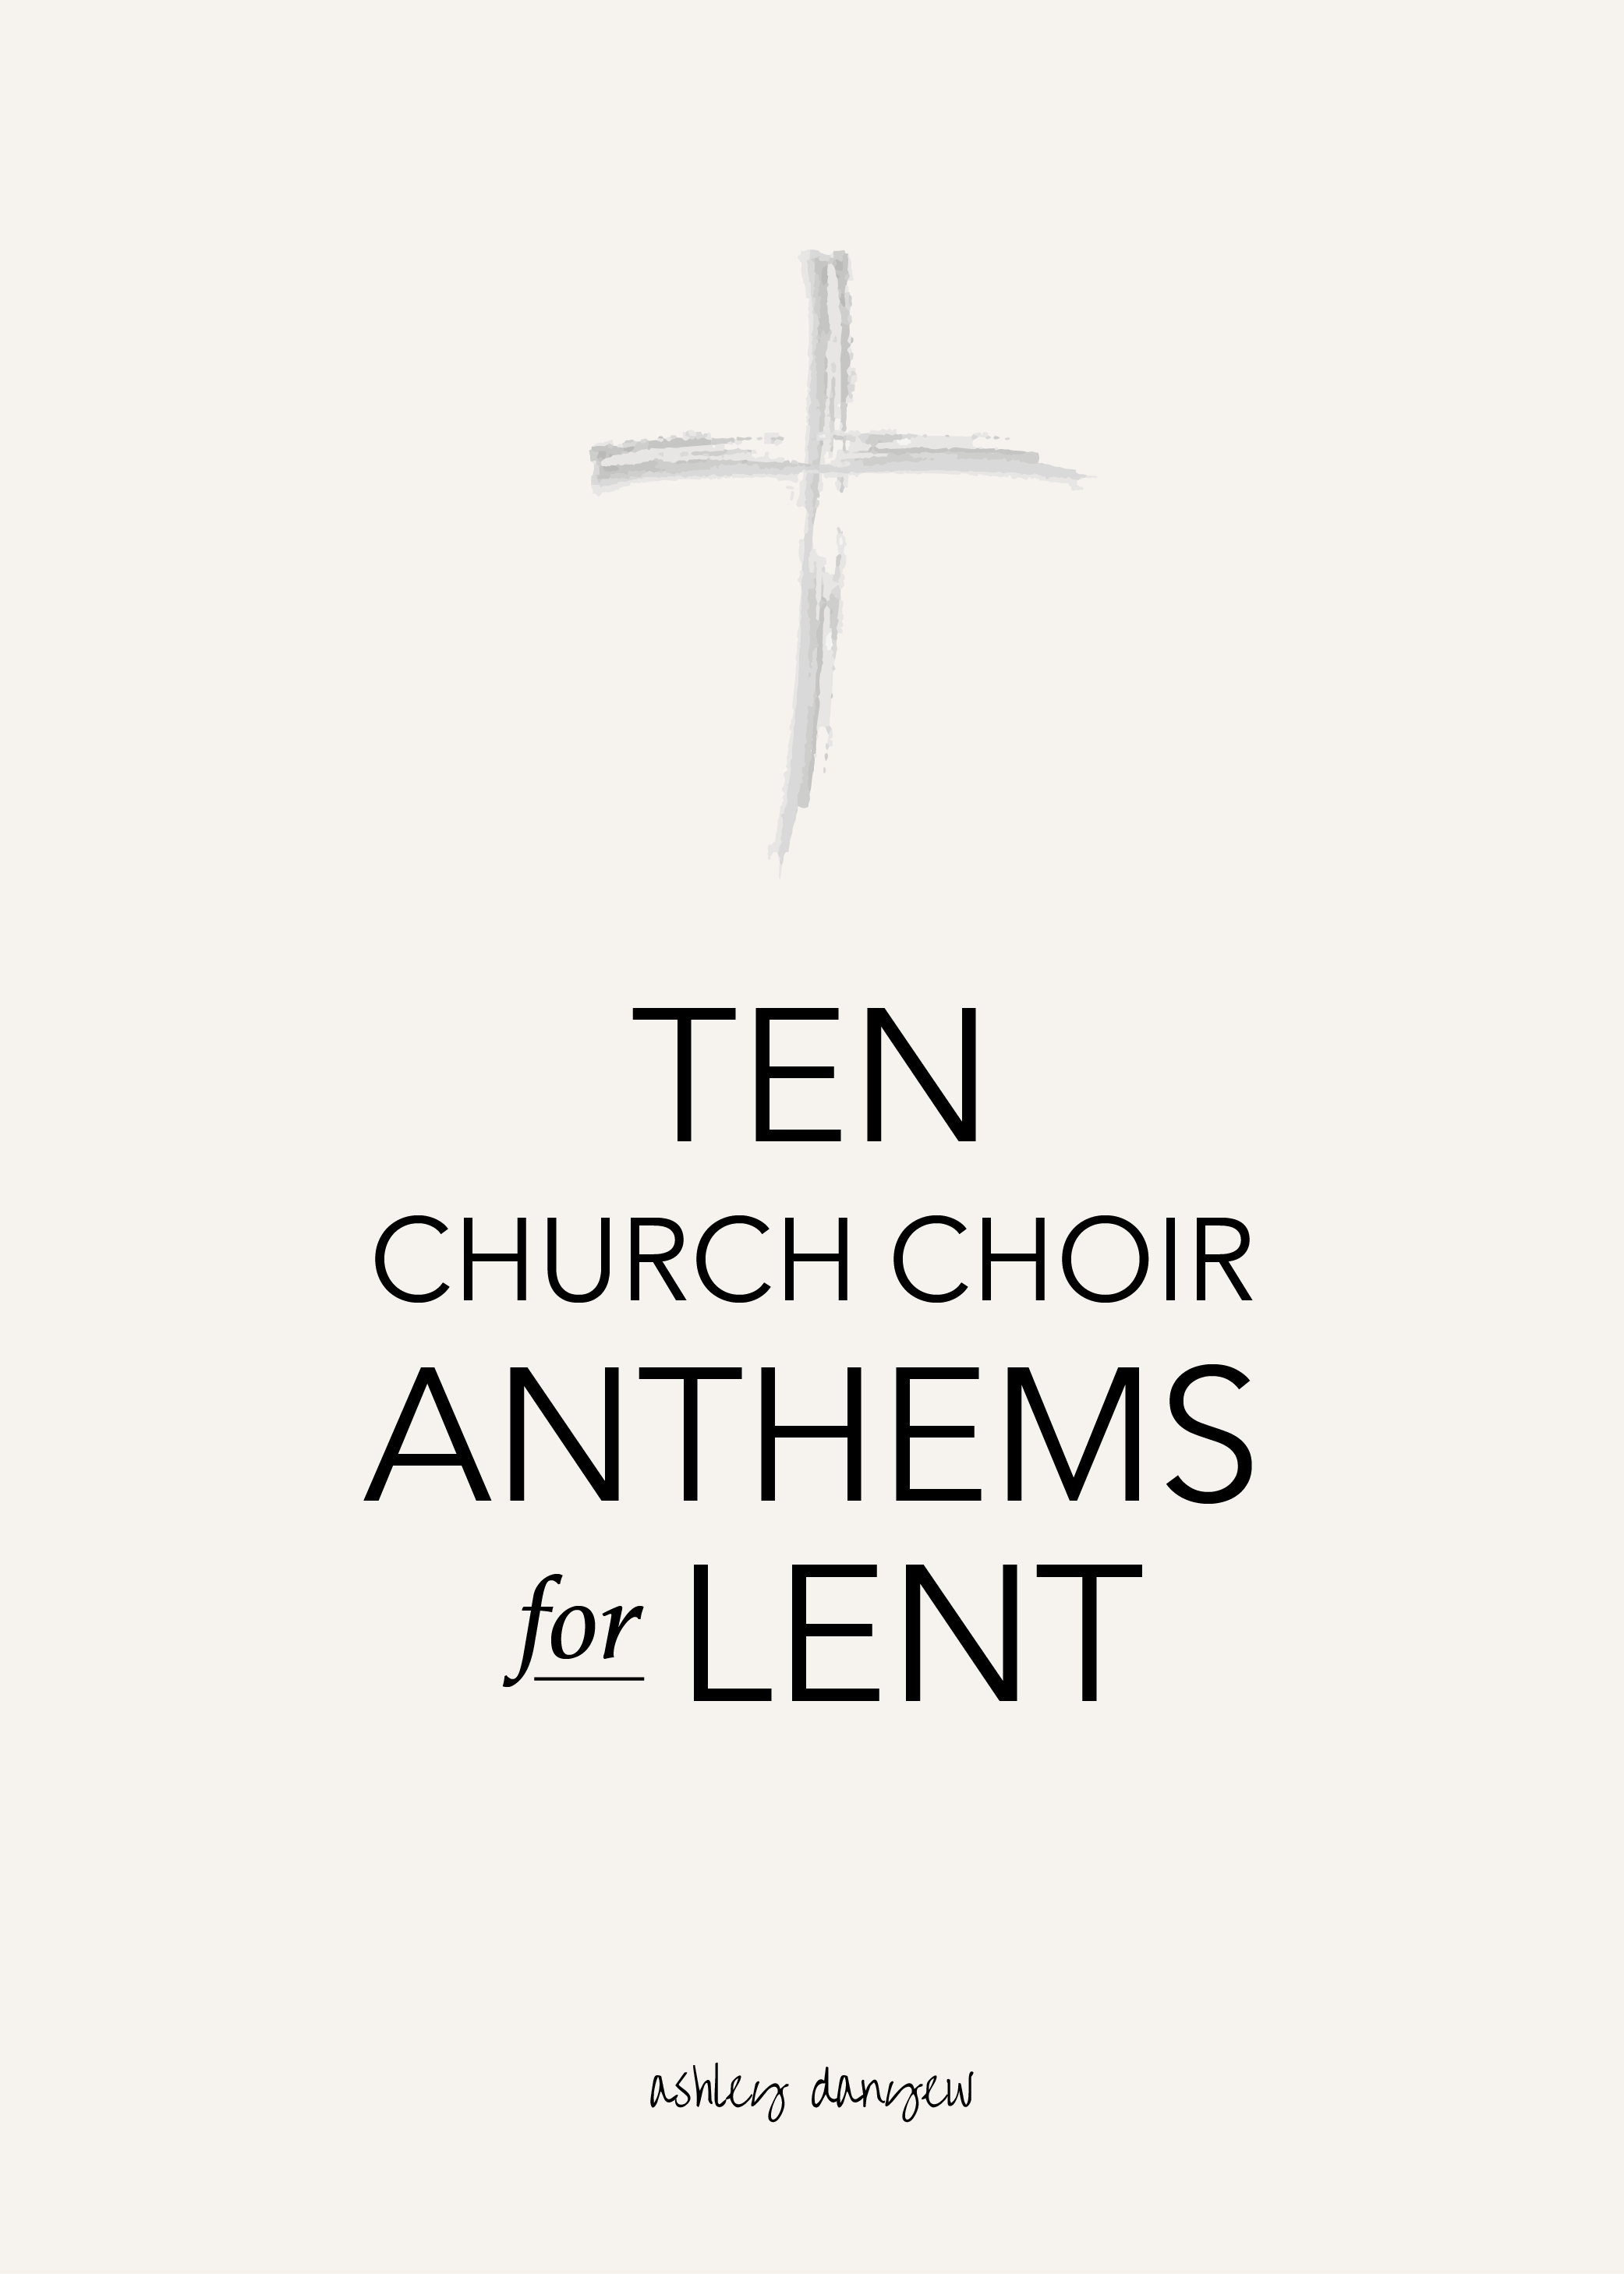 Copy of 10 Church Choir Anthems for Lent